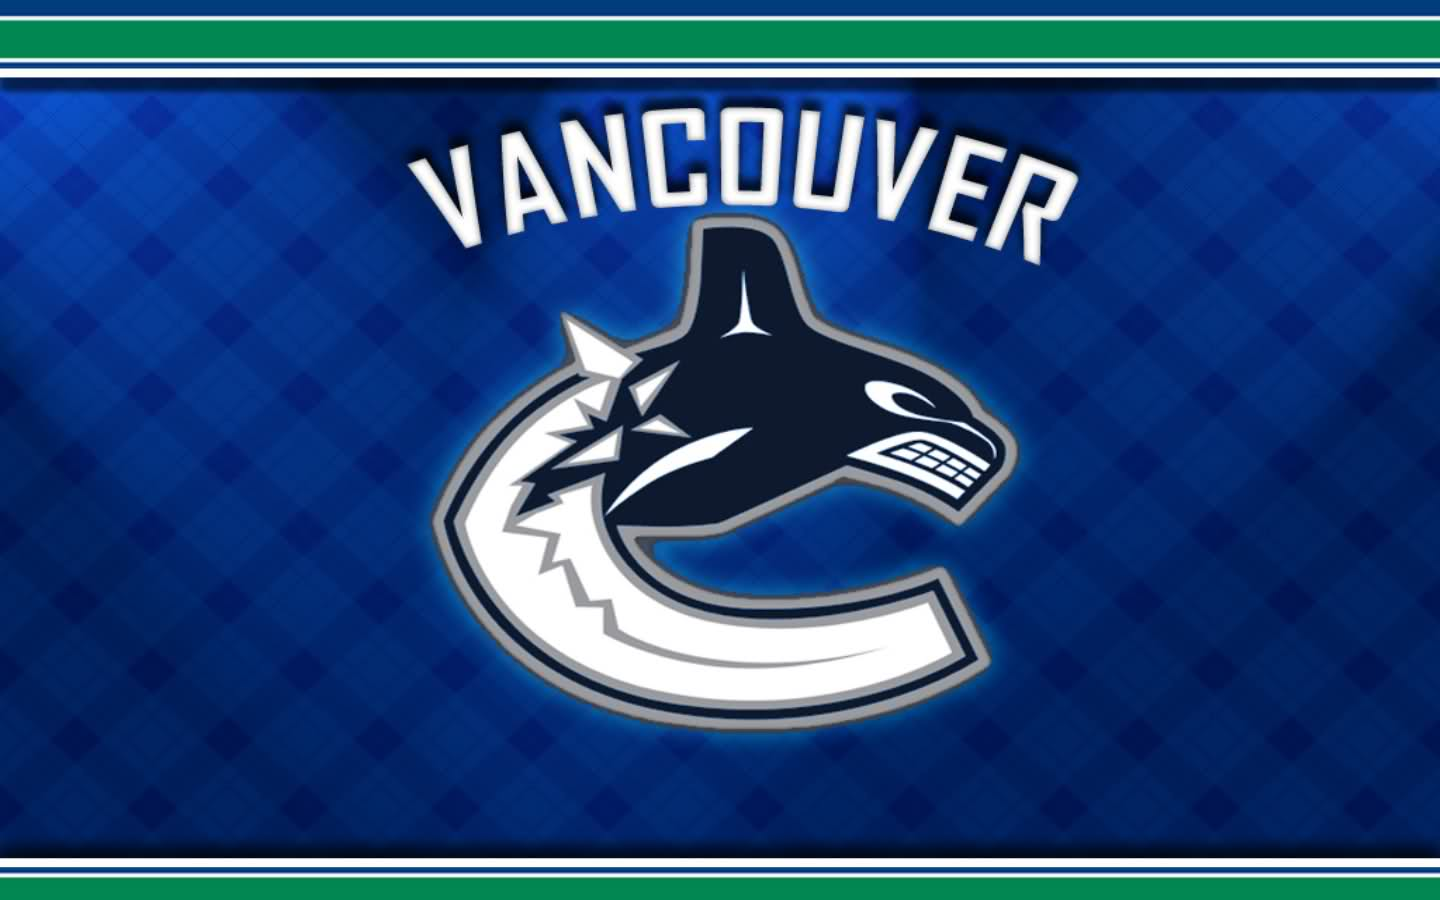 HDMOU TOP 8 VARIOUS CANUCKS WALLPAPERS IN HD 1440x900